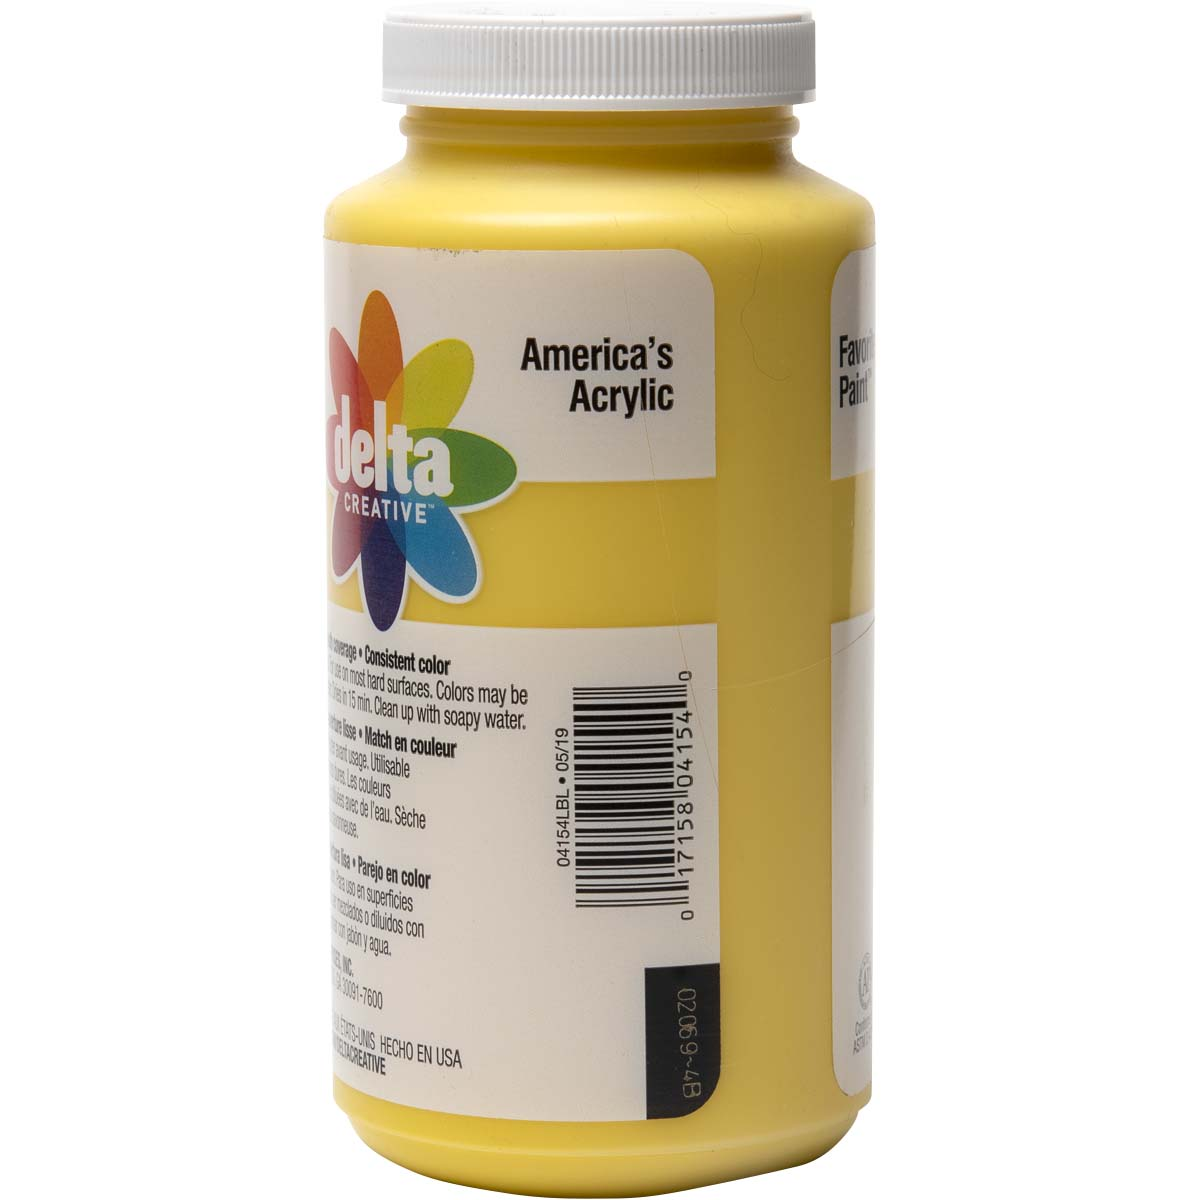 Delta Ceramcoat ® Acrylic Paint - Bright Yellow, 16 oz. - 04154